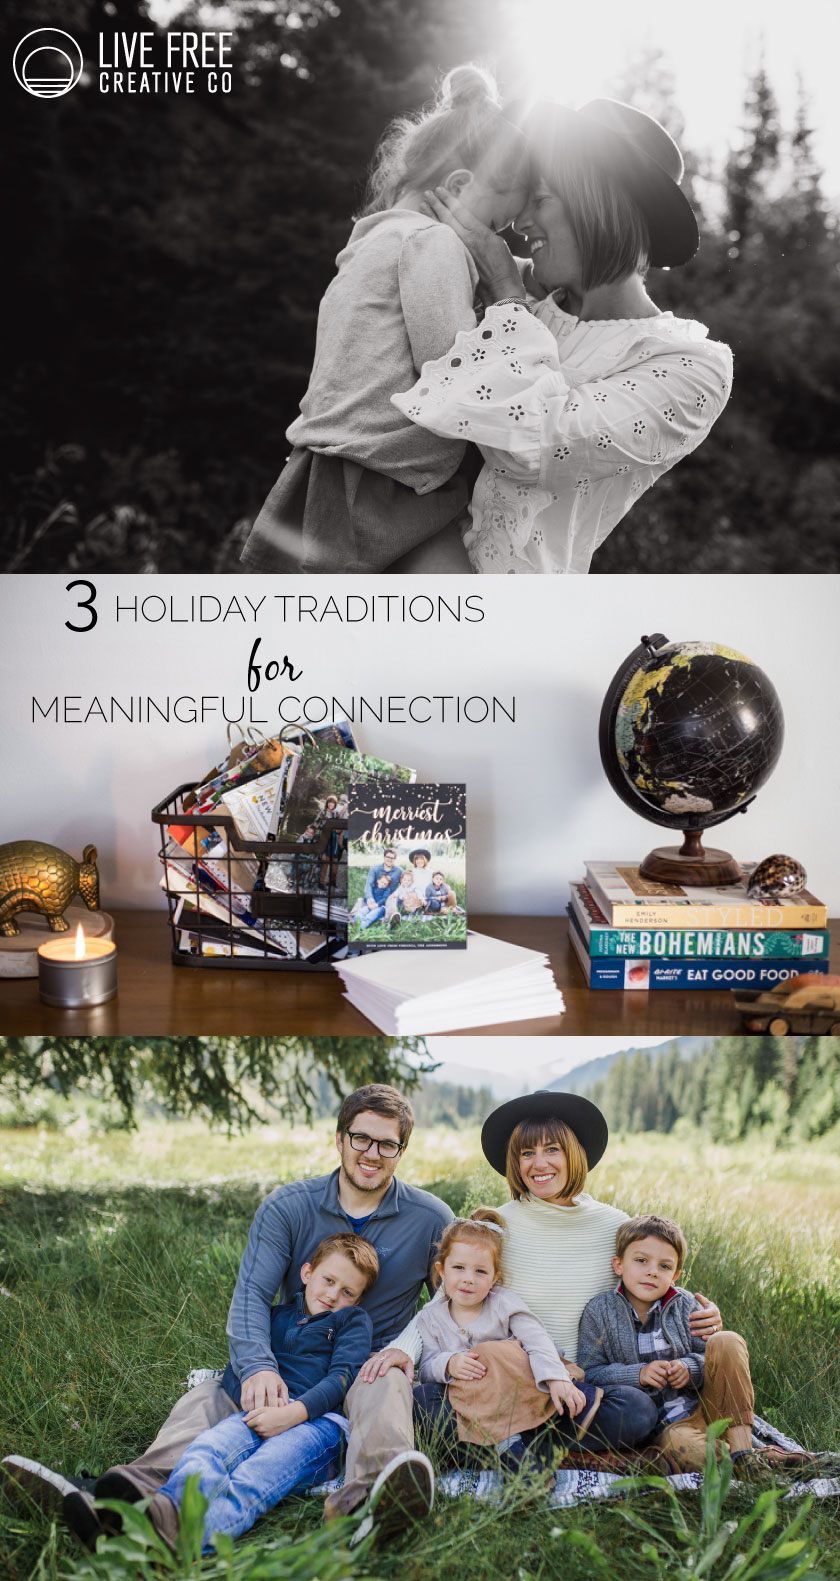 3 Holiday Traditions for Meaningful Connection| Live Free Creative Co